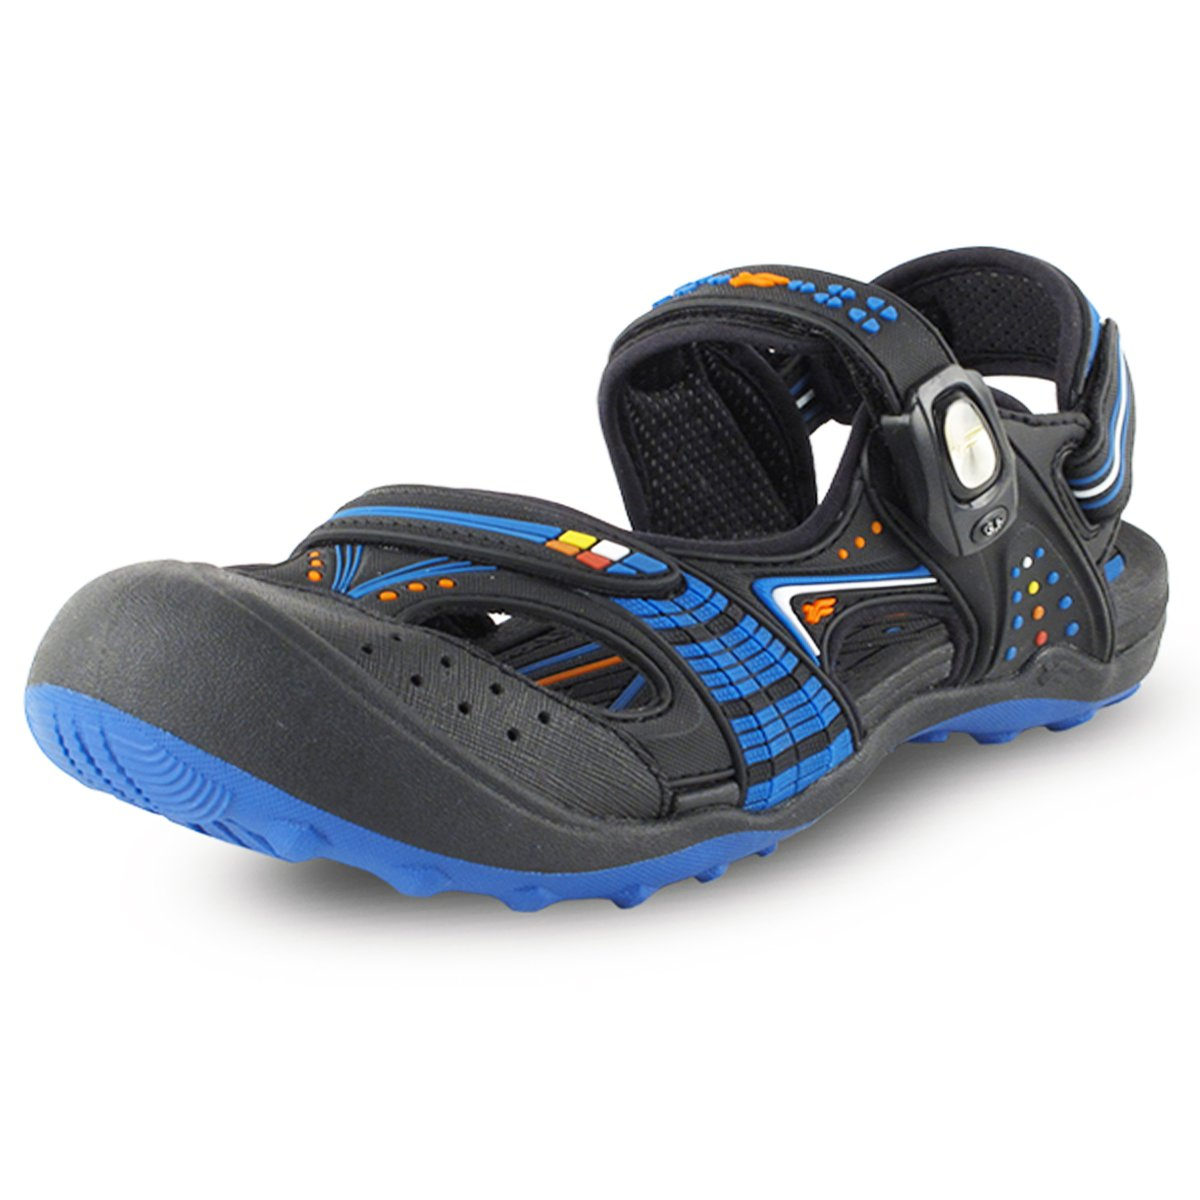 Easy On//Off SNAP Lock Closure Toe Guard Sandals for Boys /& Girls